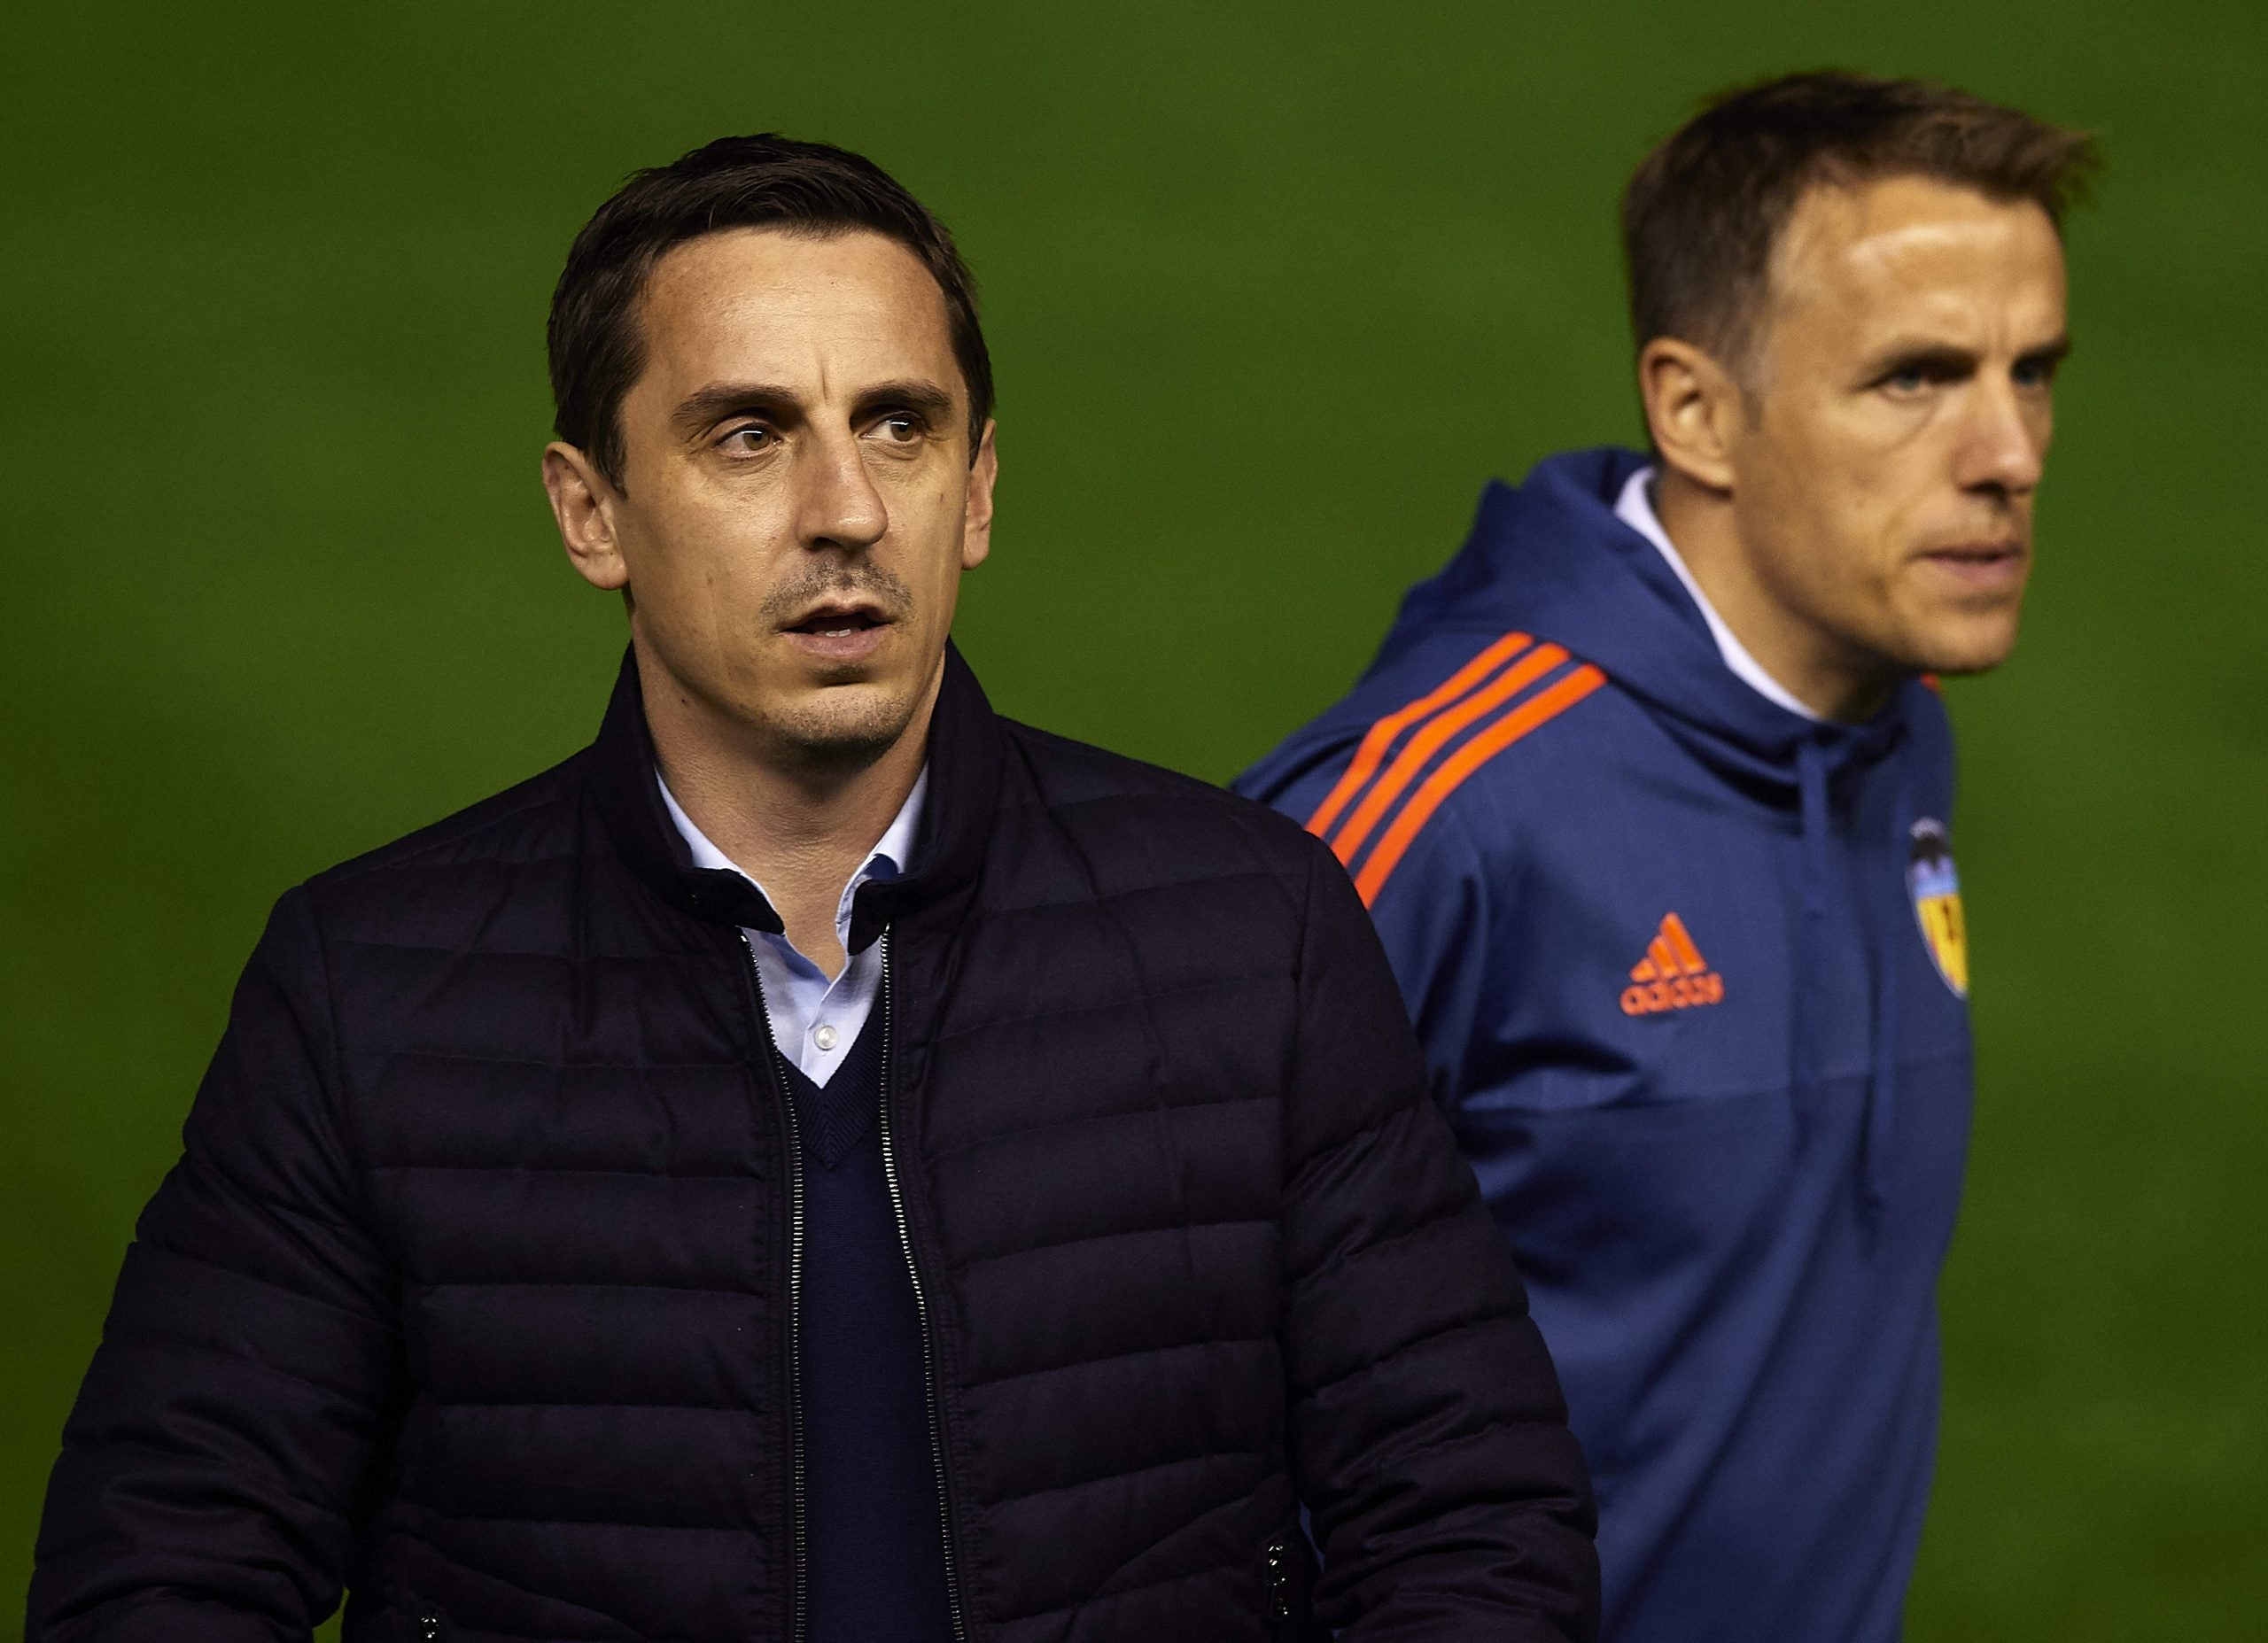 Gary Neville's Spanish struggles highlight the problems of restricted football strategy